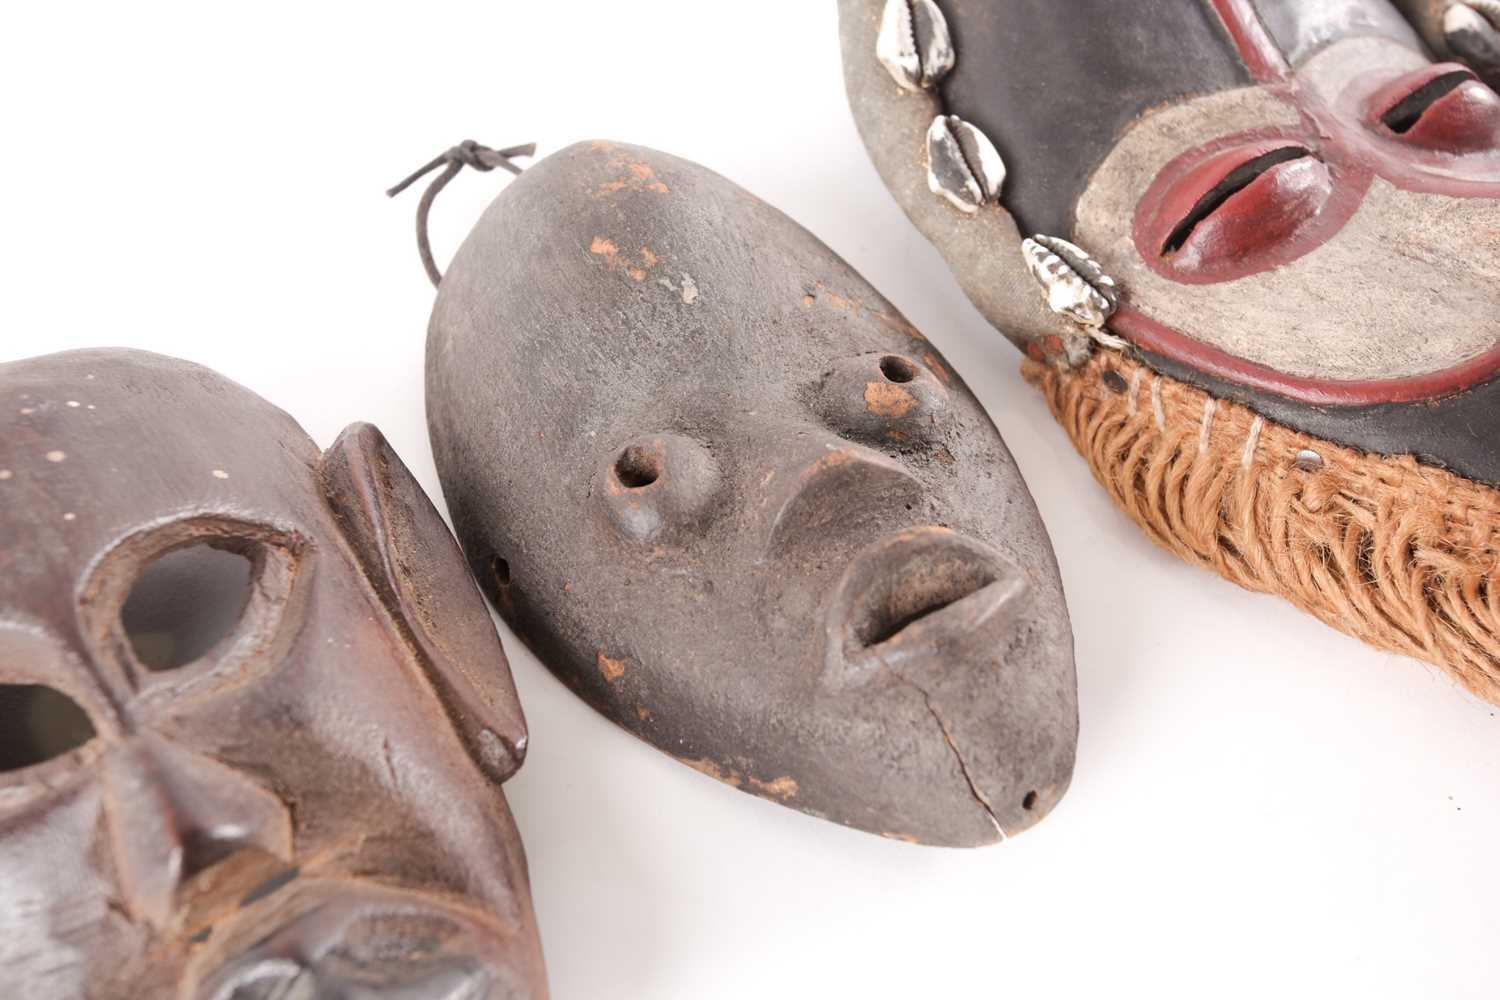 Three Dan passport masks, Ivory coast, one with long woven natural fibres above a median line - Image 3 of 6